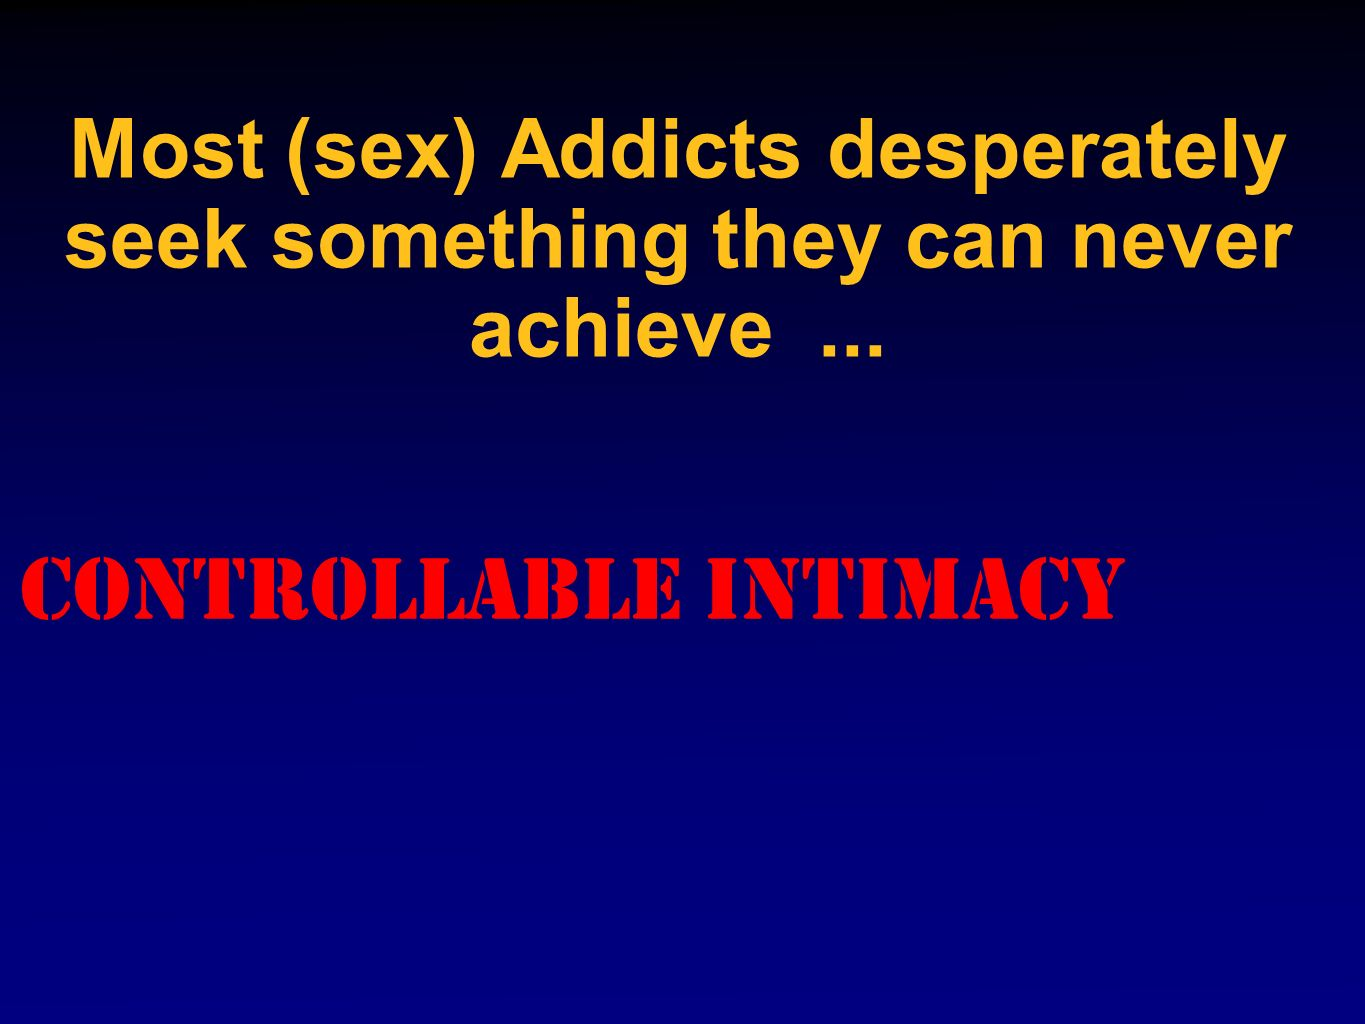 Most (sex) Addicts desperately seek something they can never achieve... Controllable Intimacy